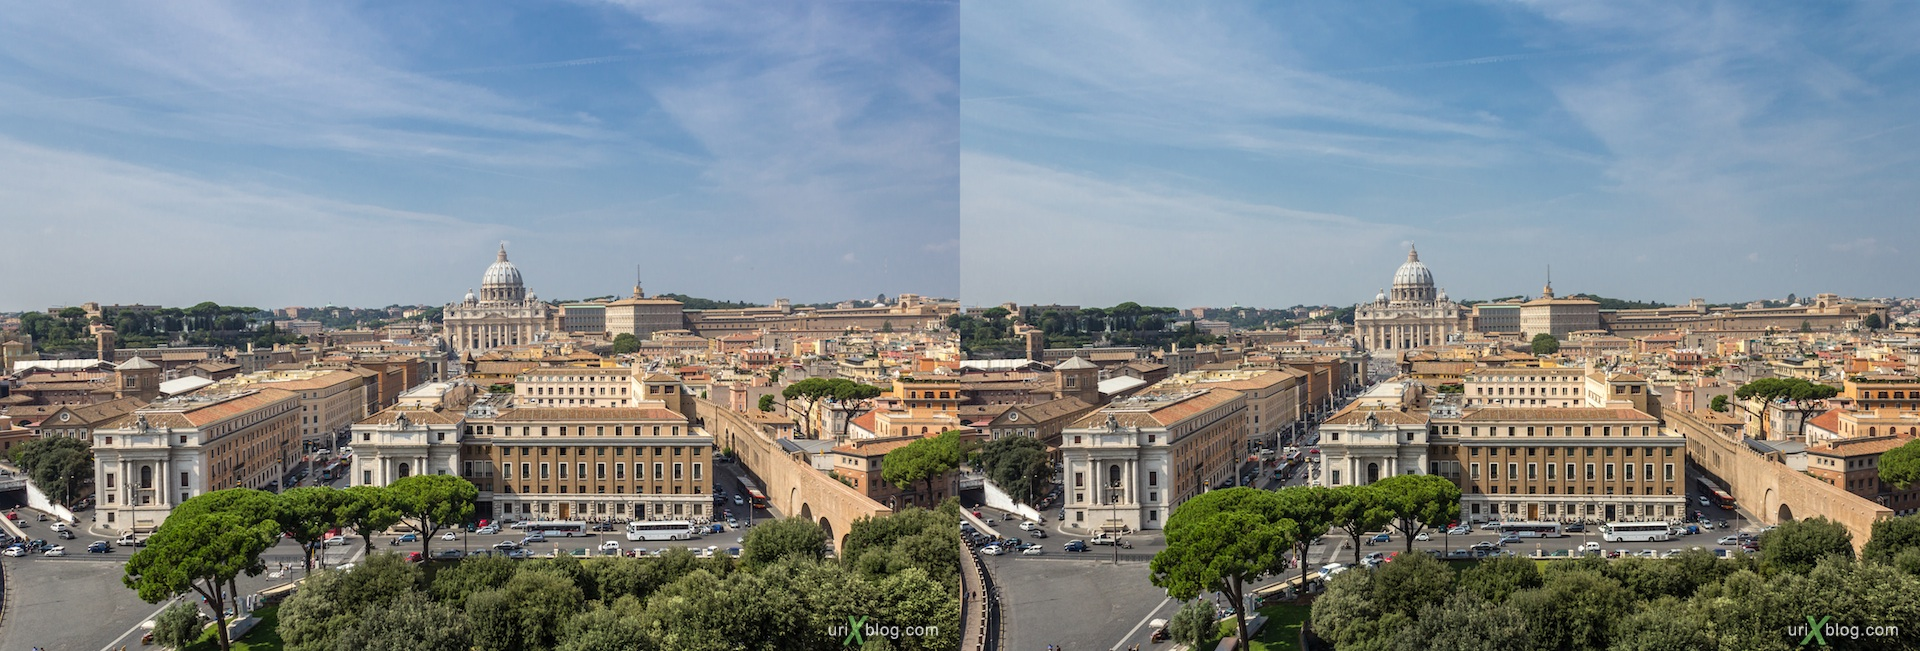 2012, Vatican, Castel Sant' Angelo, Mausoleum of Hadrian, Rome, Italy, 3D, stereo pair, cross-eyed, crossview, cross view stereo pair